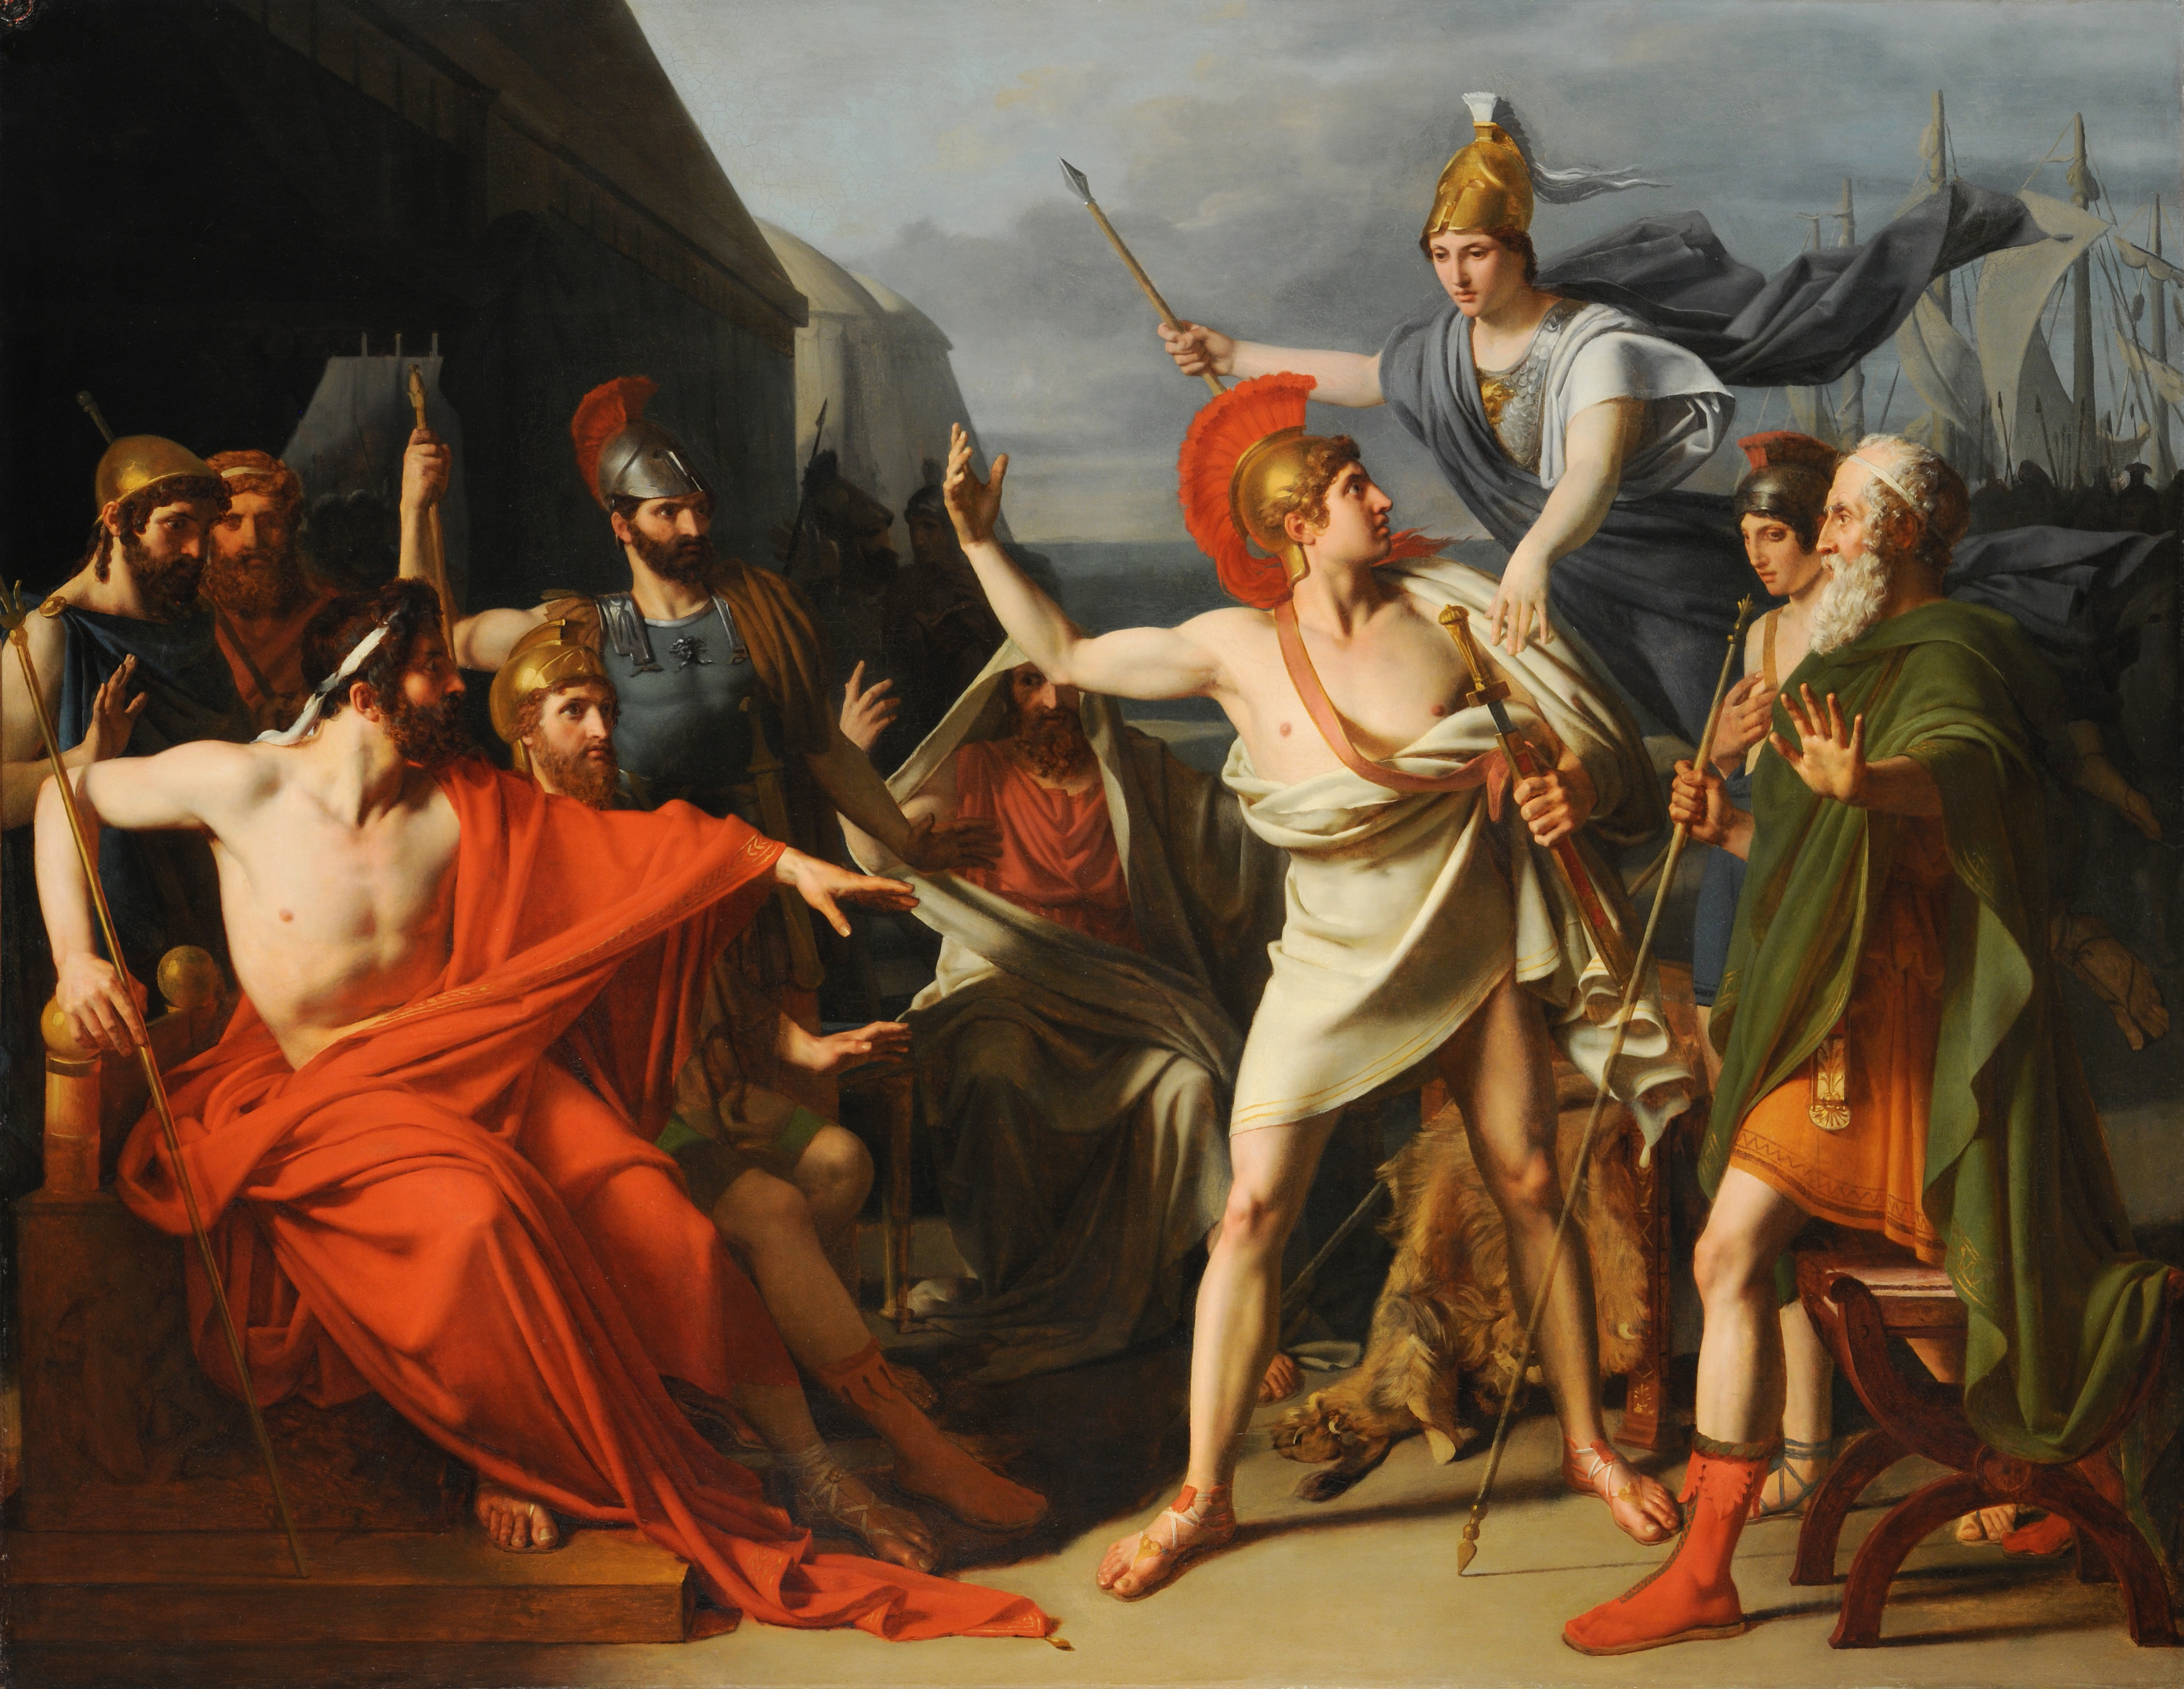 Michel-Martin Drolling